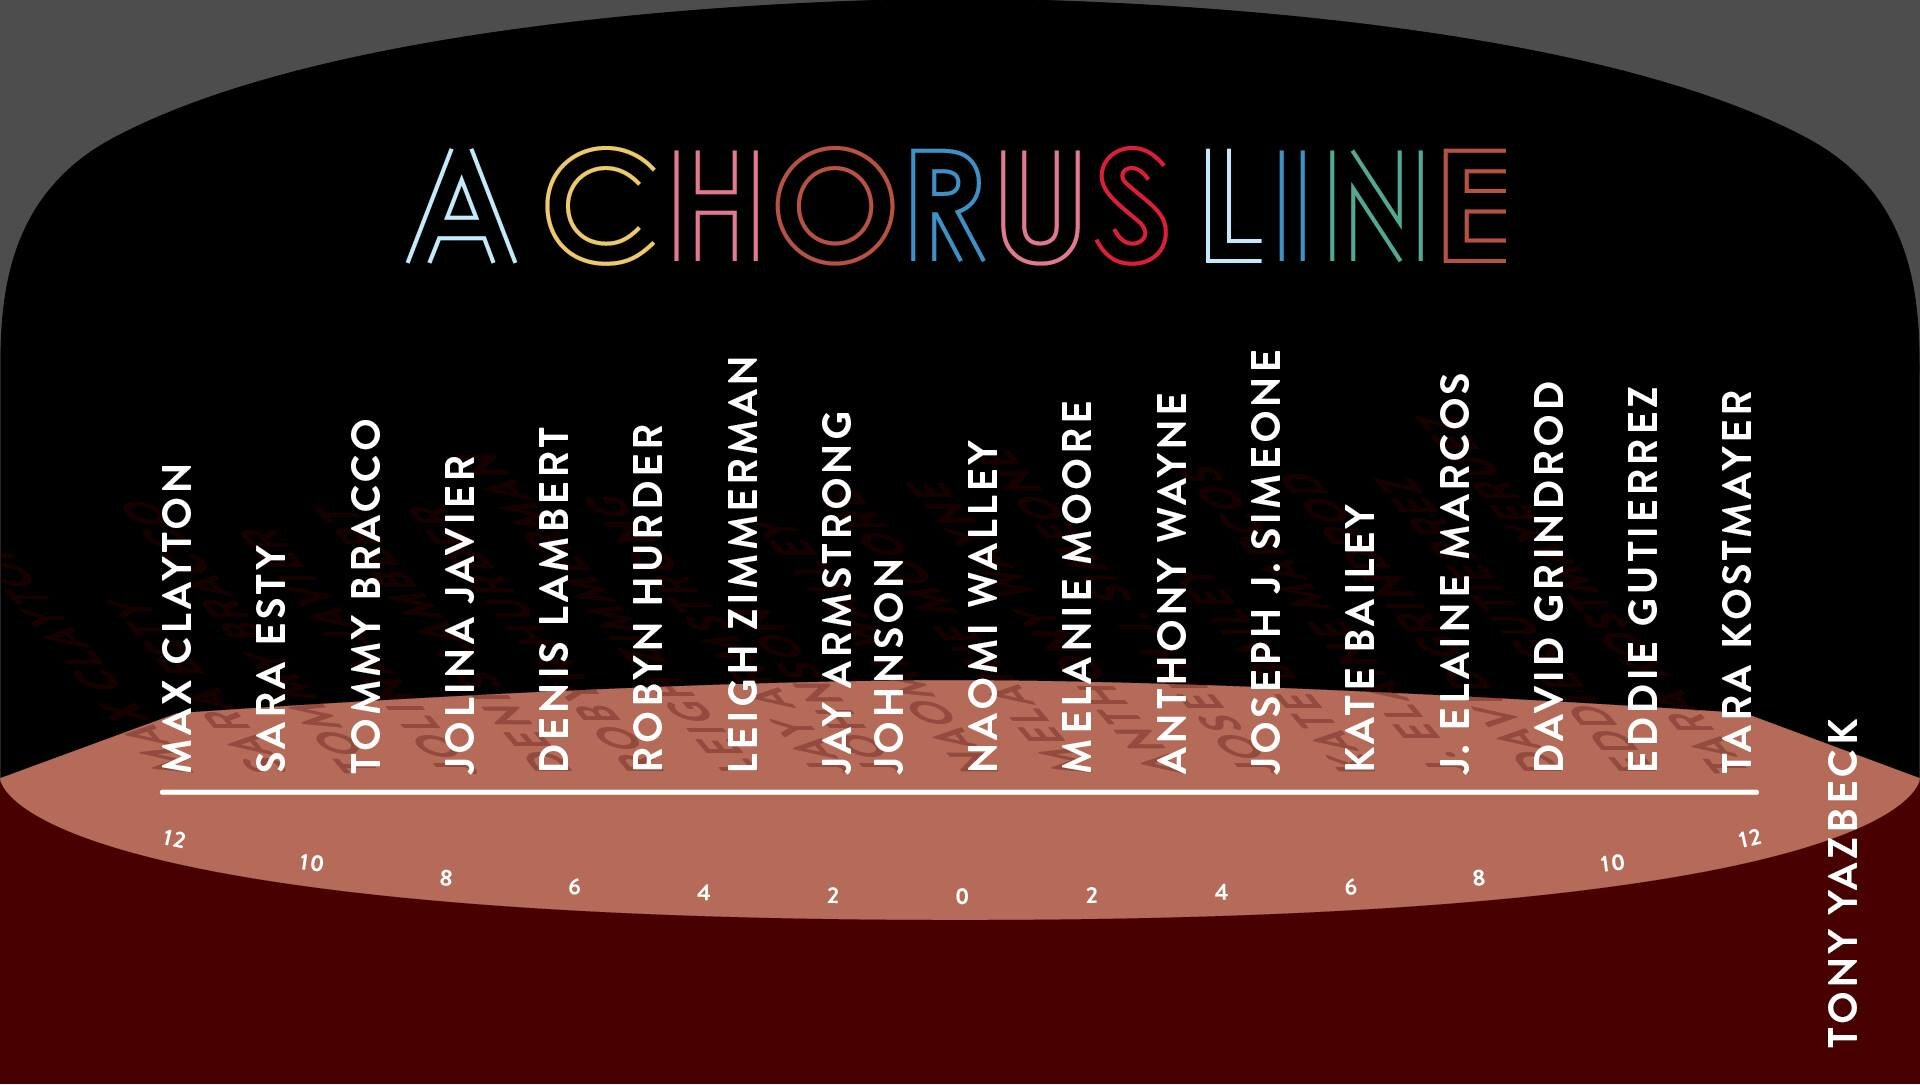 Responsible for art directing this graphic which was used to announce the cast of A Chorus Line in an unexpected way while subtly paying tribute to the die-hard fans who would understand the references